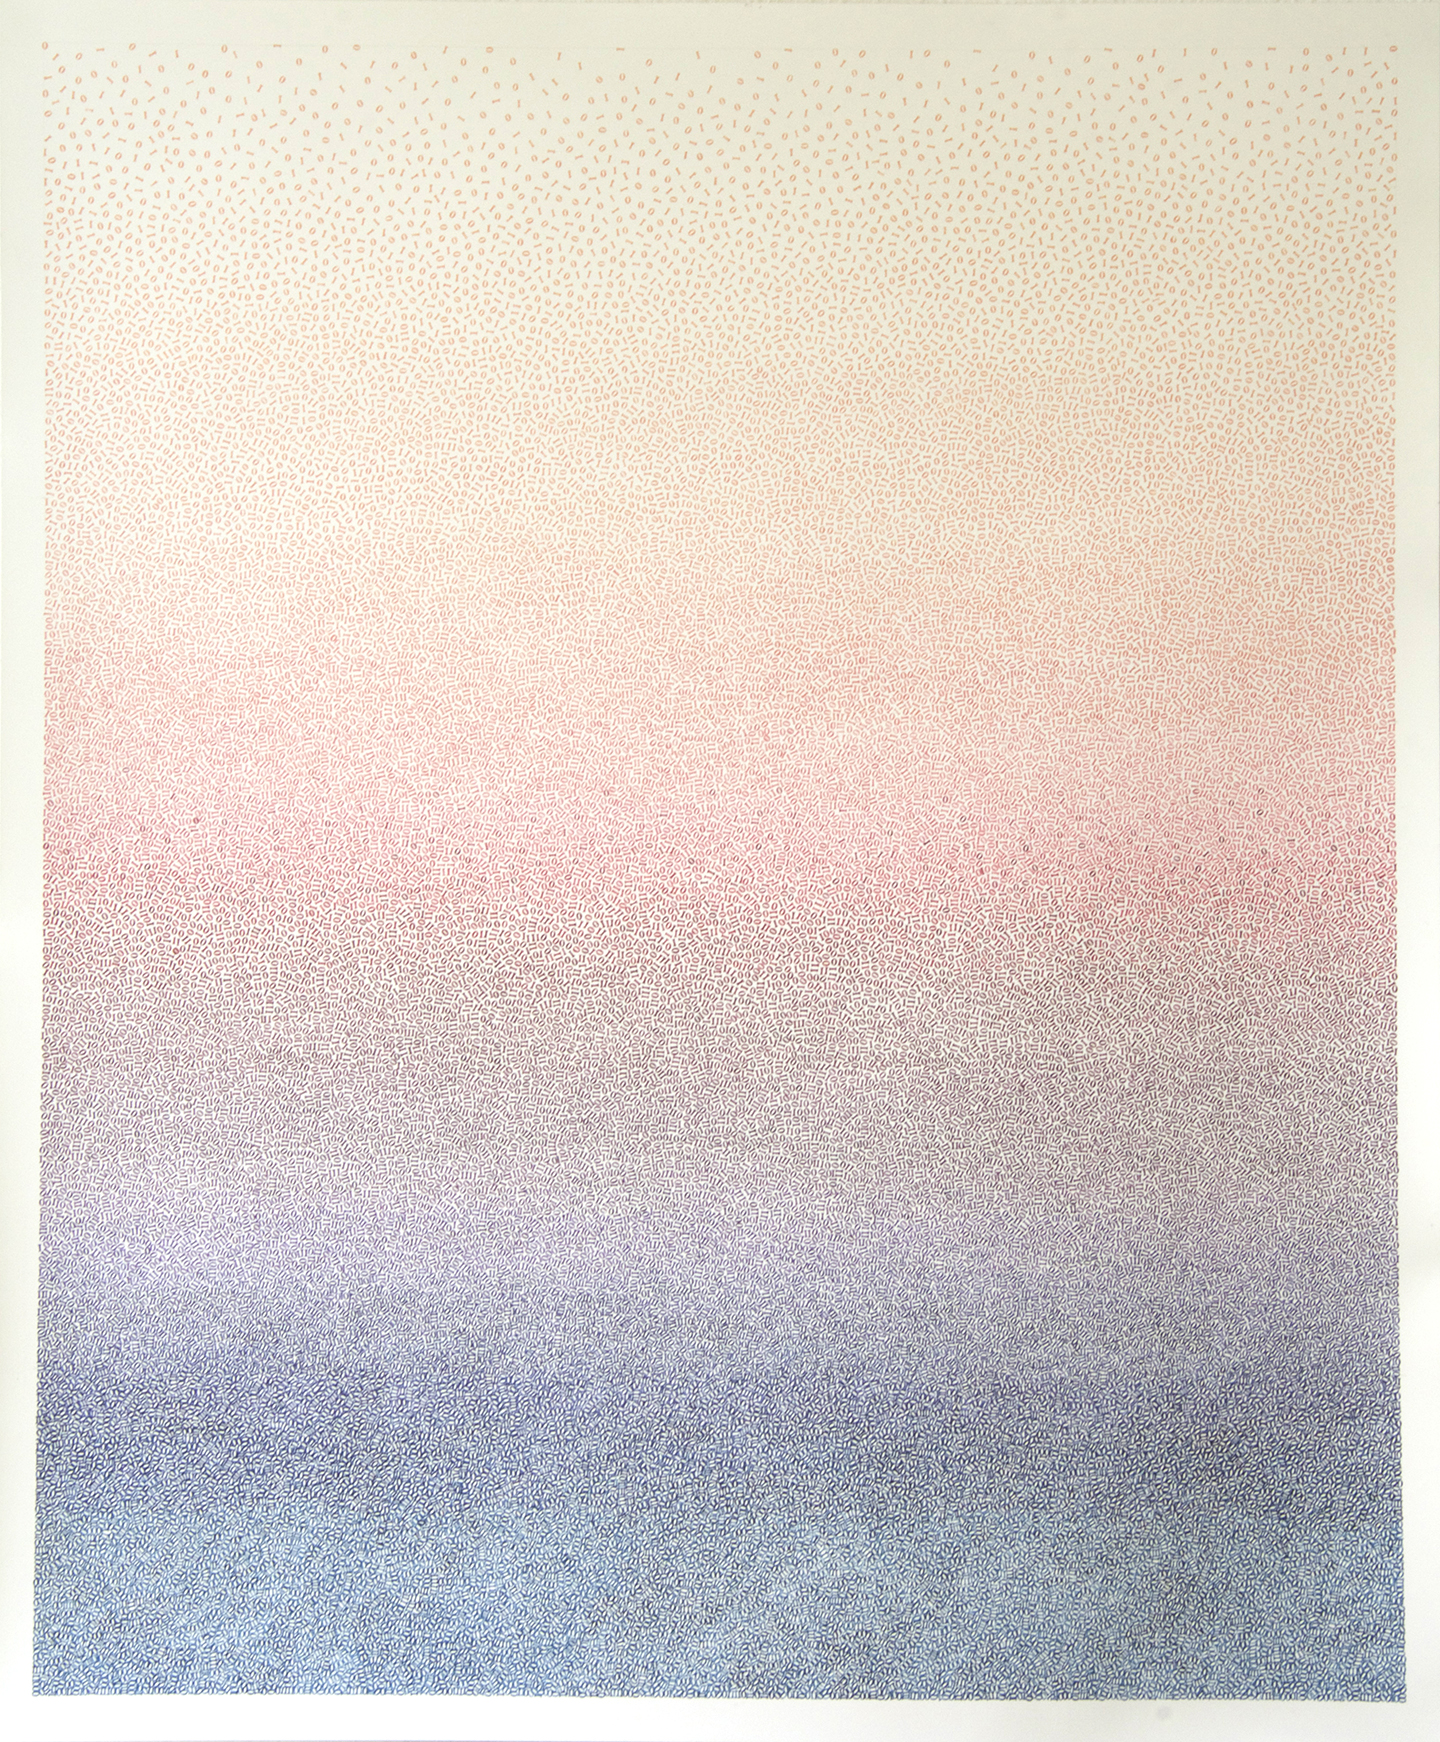 Nicky Broekhuysen's Sunset work, made of hand stamped 1s and 0s that touch but never overlap.